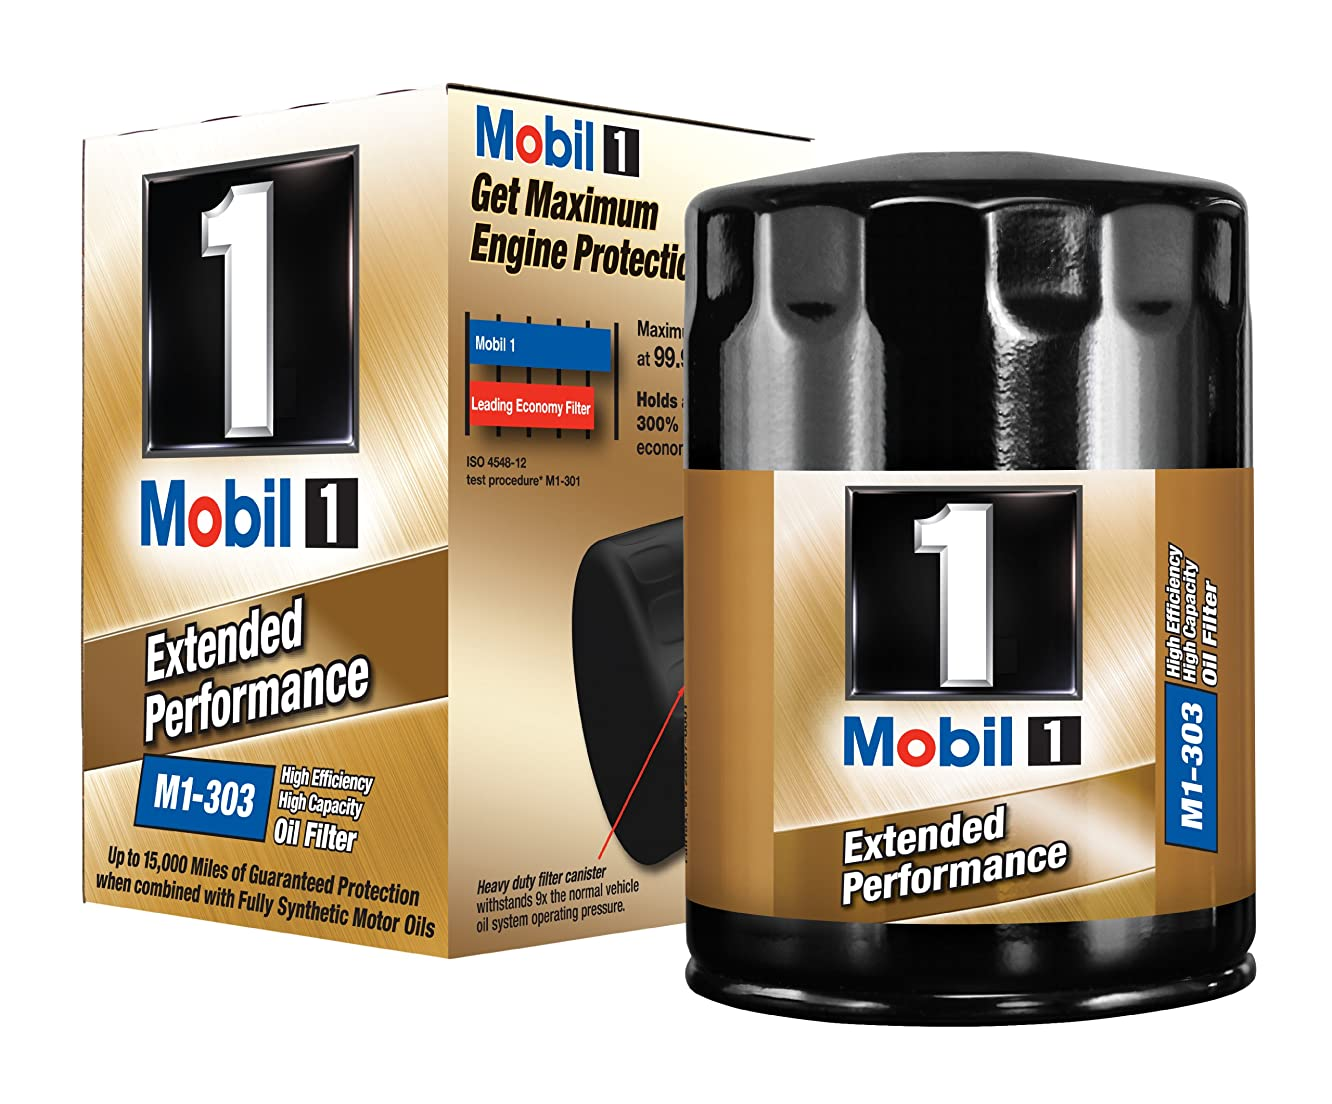 Mobil 1 M1-303 Extended Performance Oil Filter